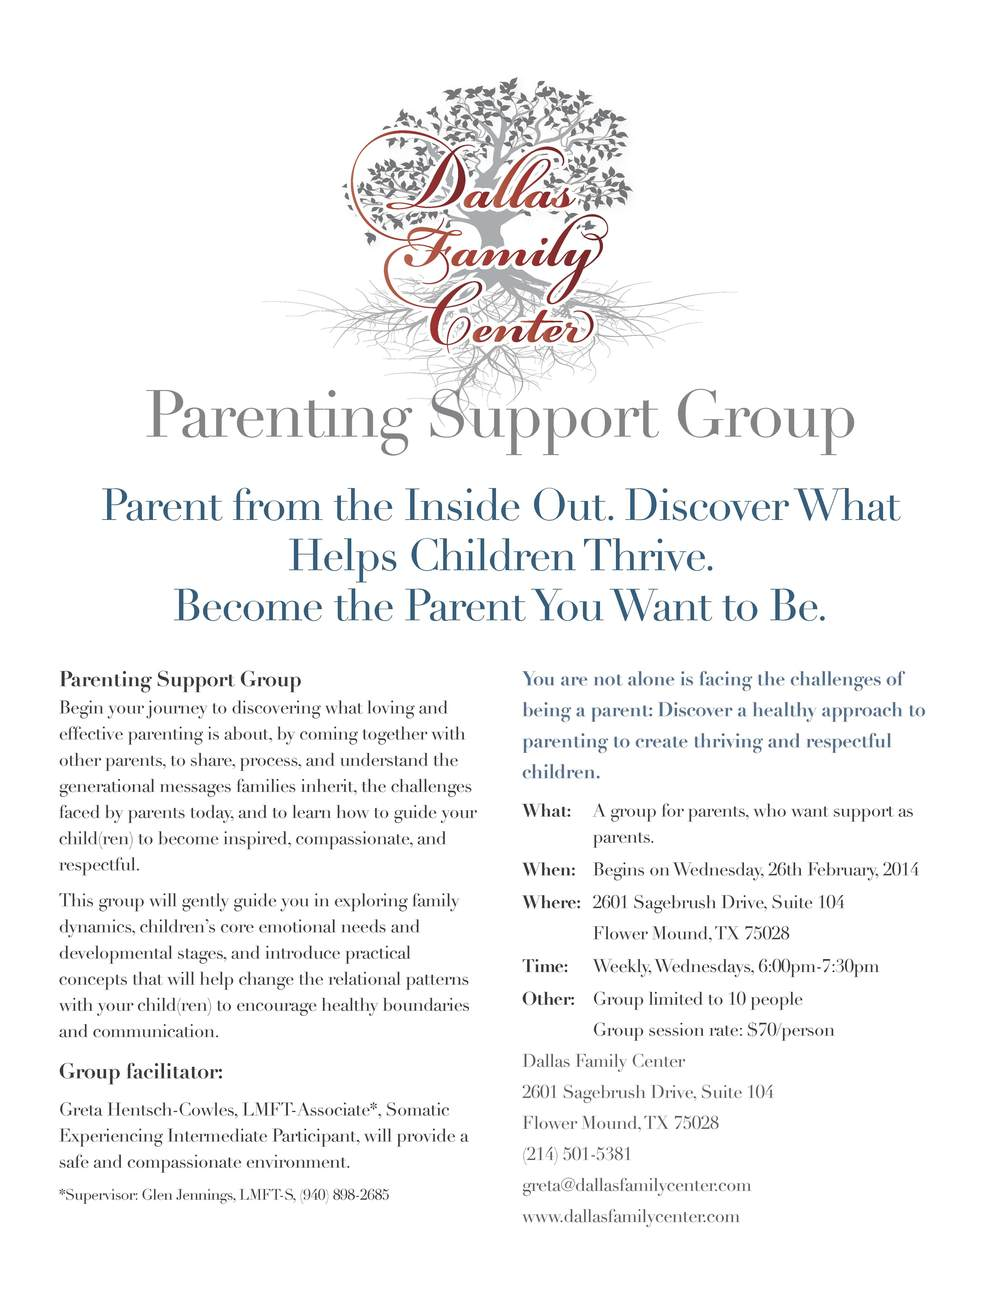 Parenting Group Flyer 2014.jpg